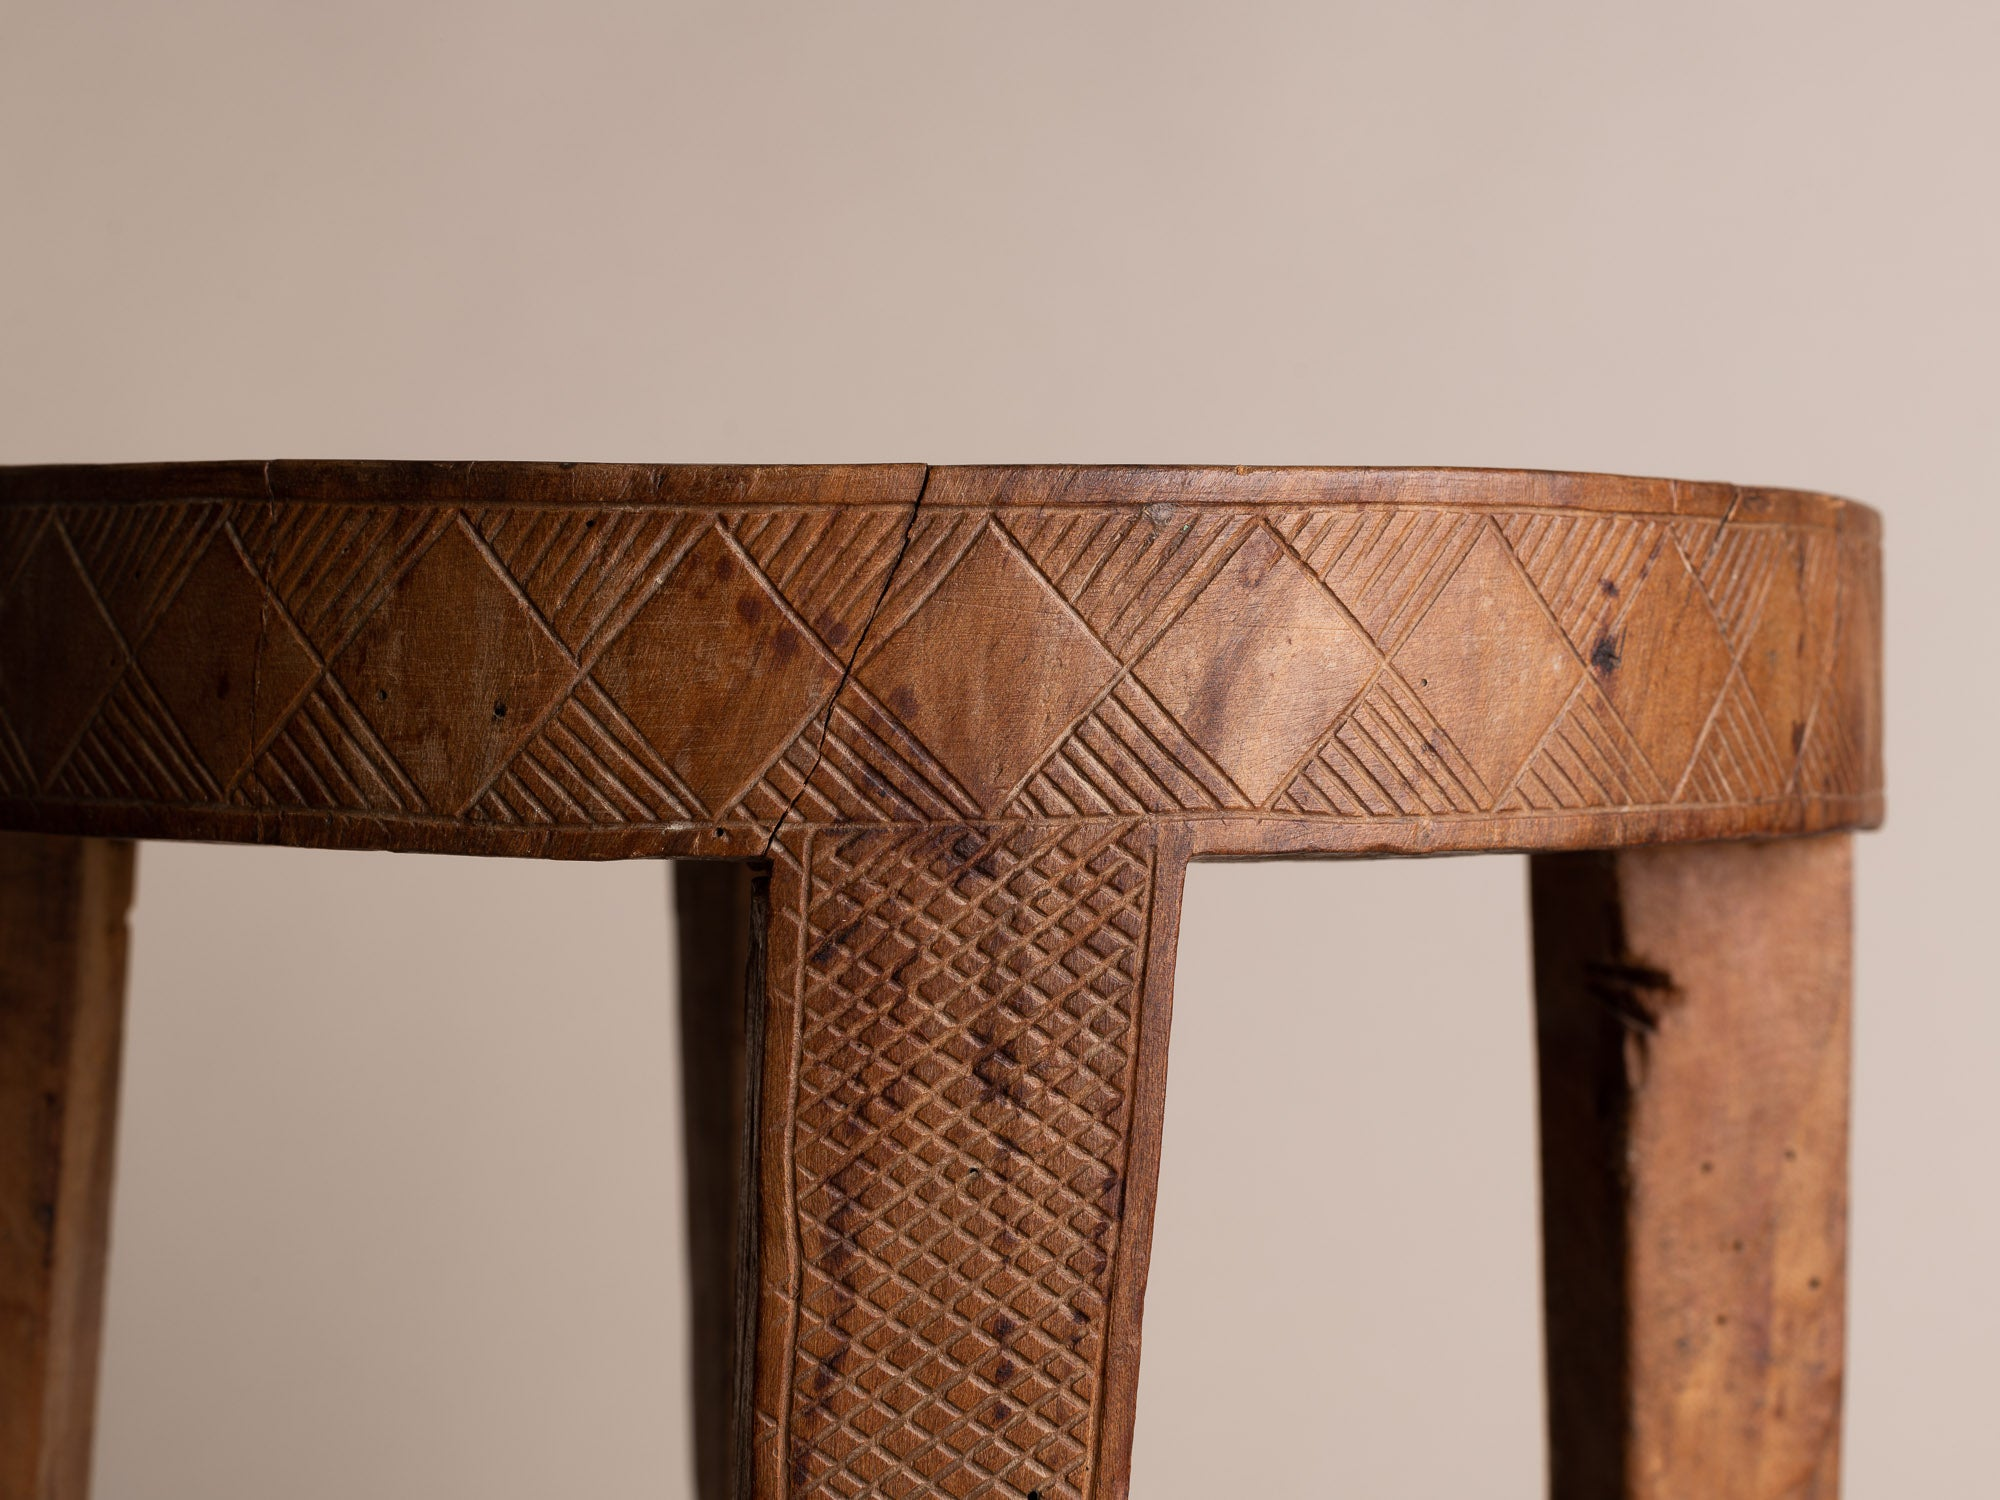 Tabouret monoxyle à décor gravé, Afrique occidentale (vers 1940-50)..Stool with engraved decoration, West Africa (circa 1940-50)